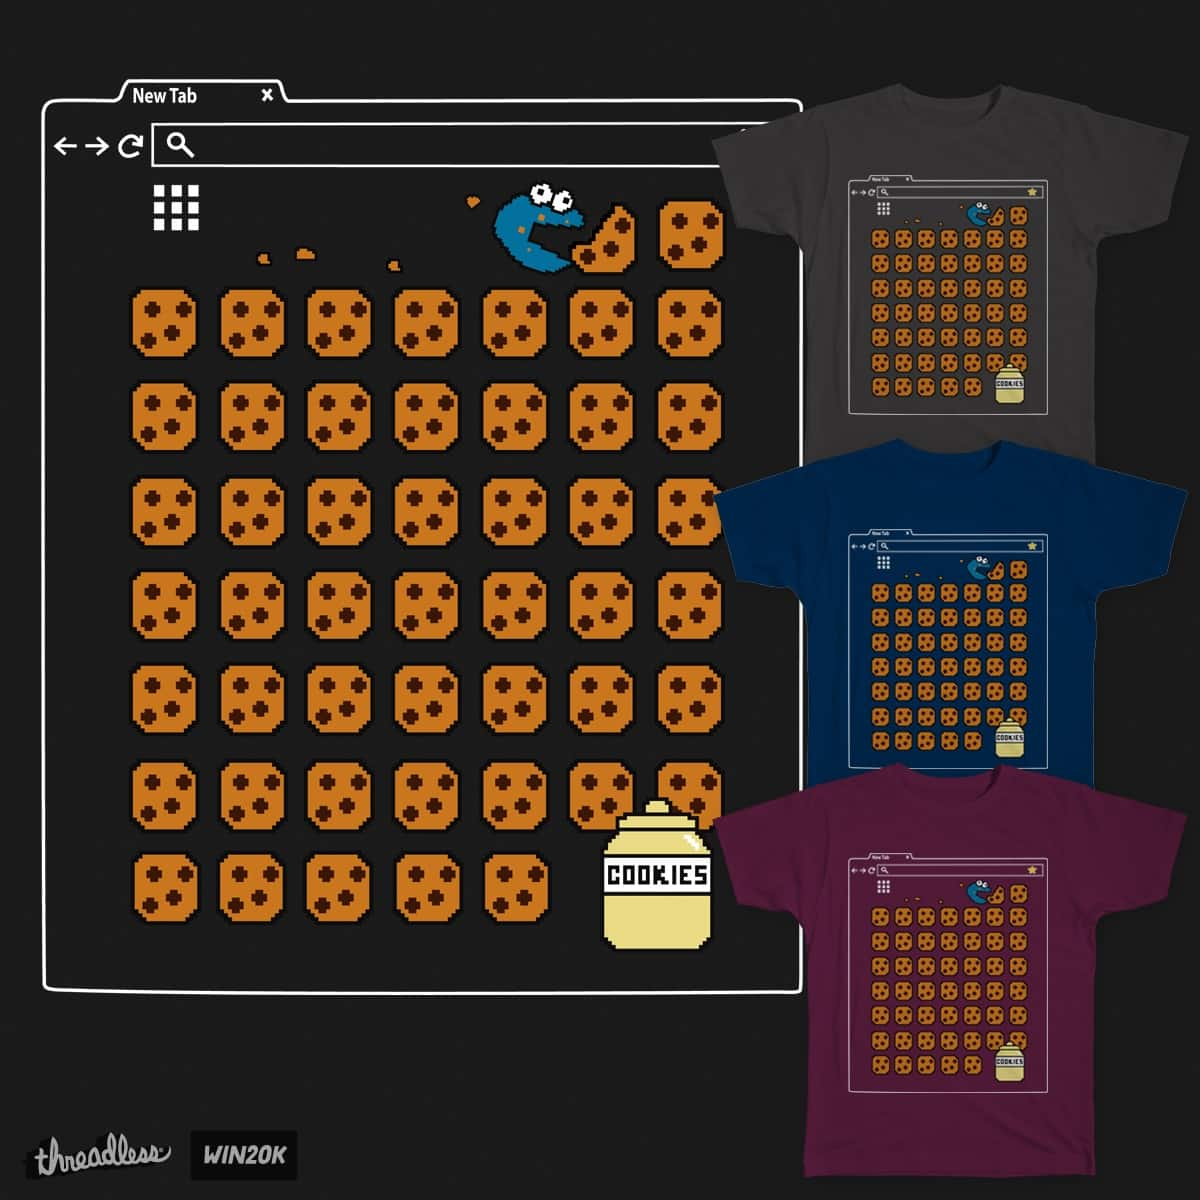 Clear you cookies by TattoonDesigns on Threadless